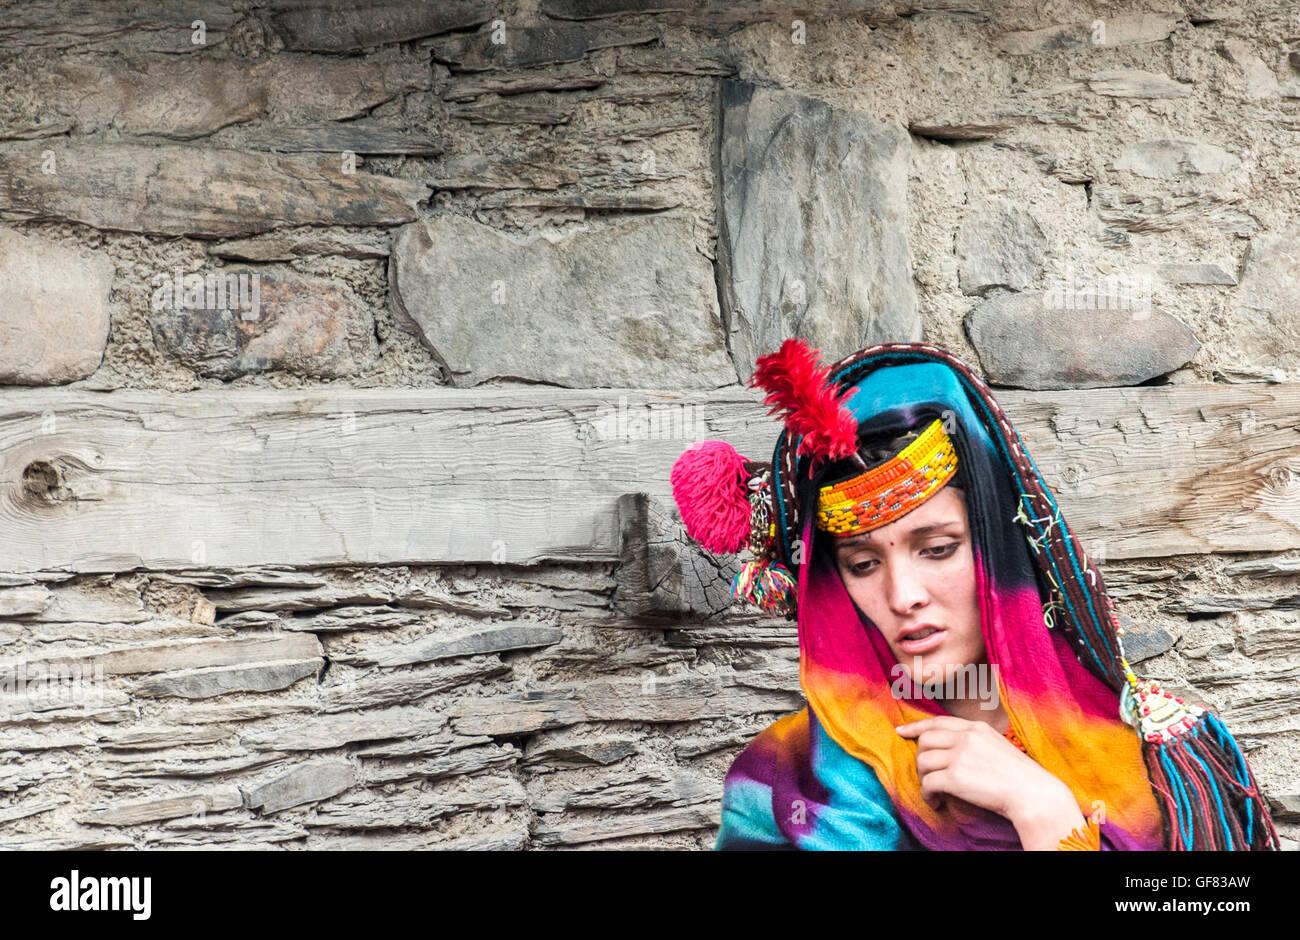 Kalash woman wearing traditional headdress, bead necklaces and embroidered black dress - Stock Image